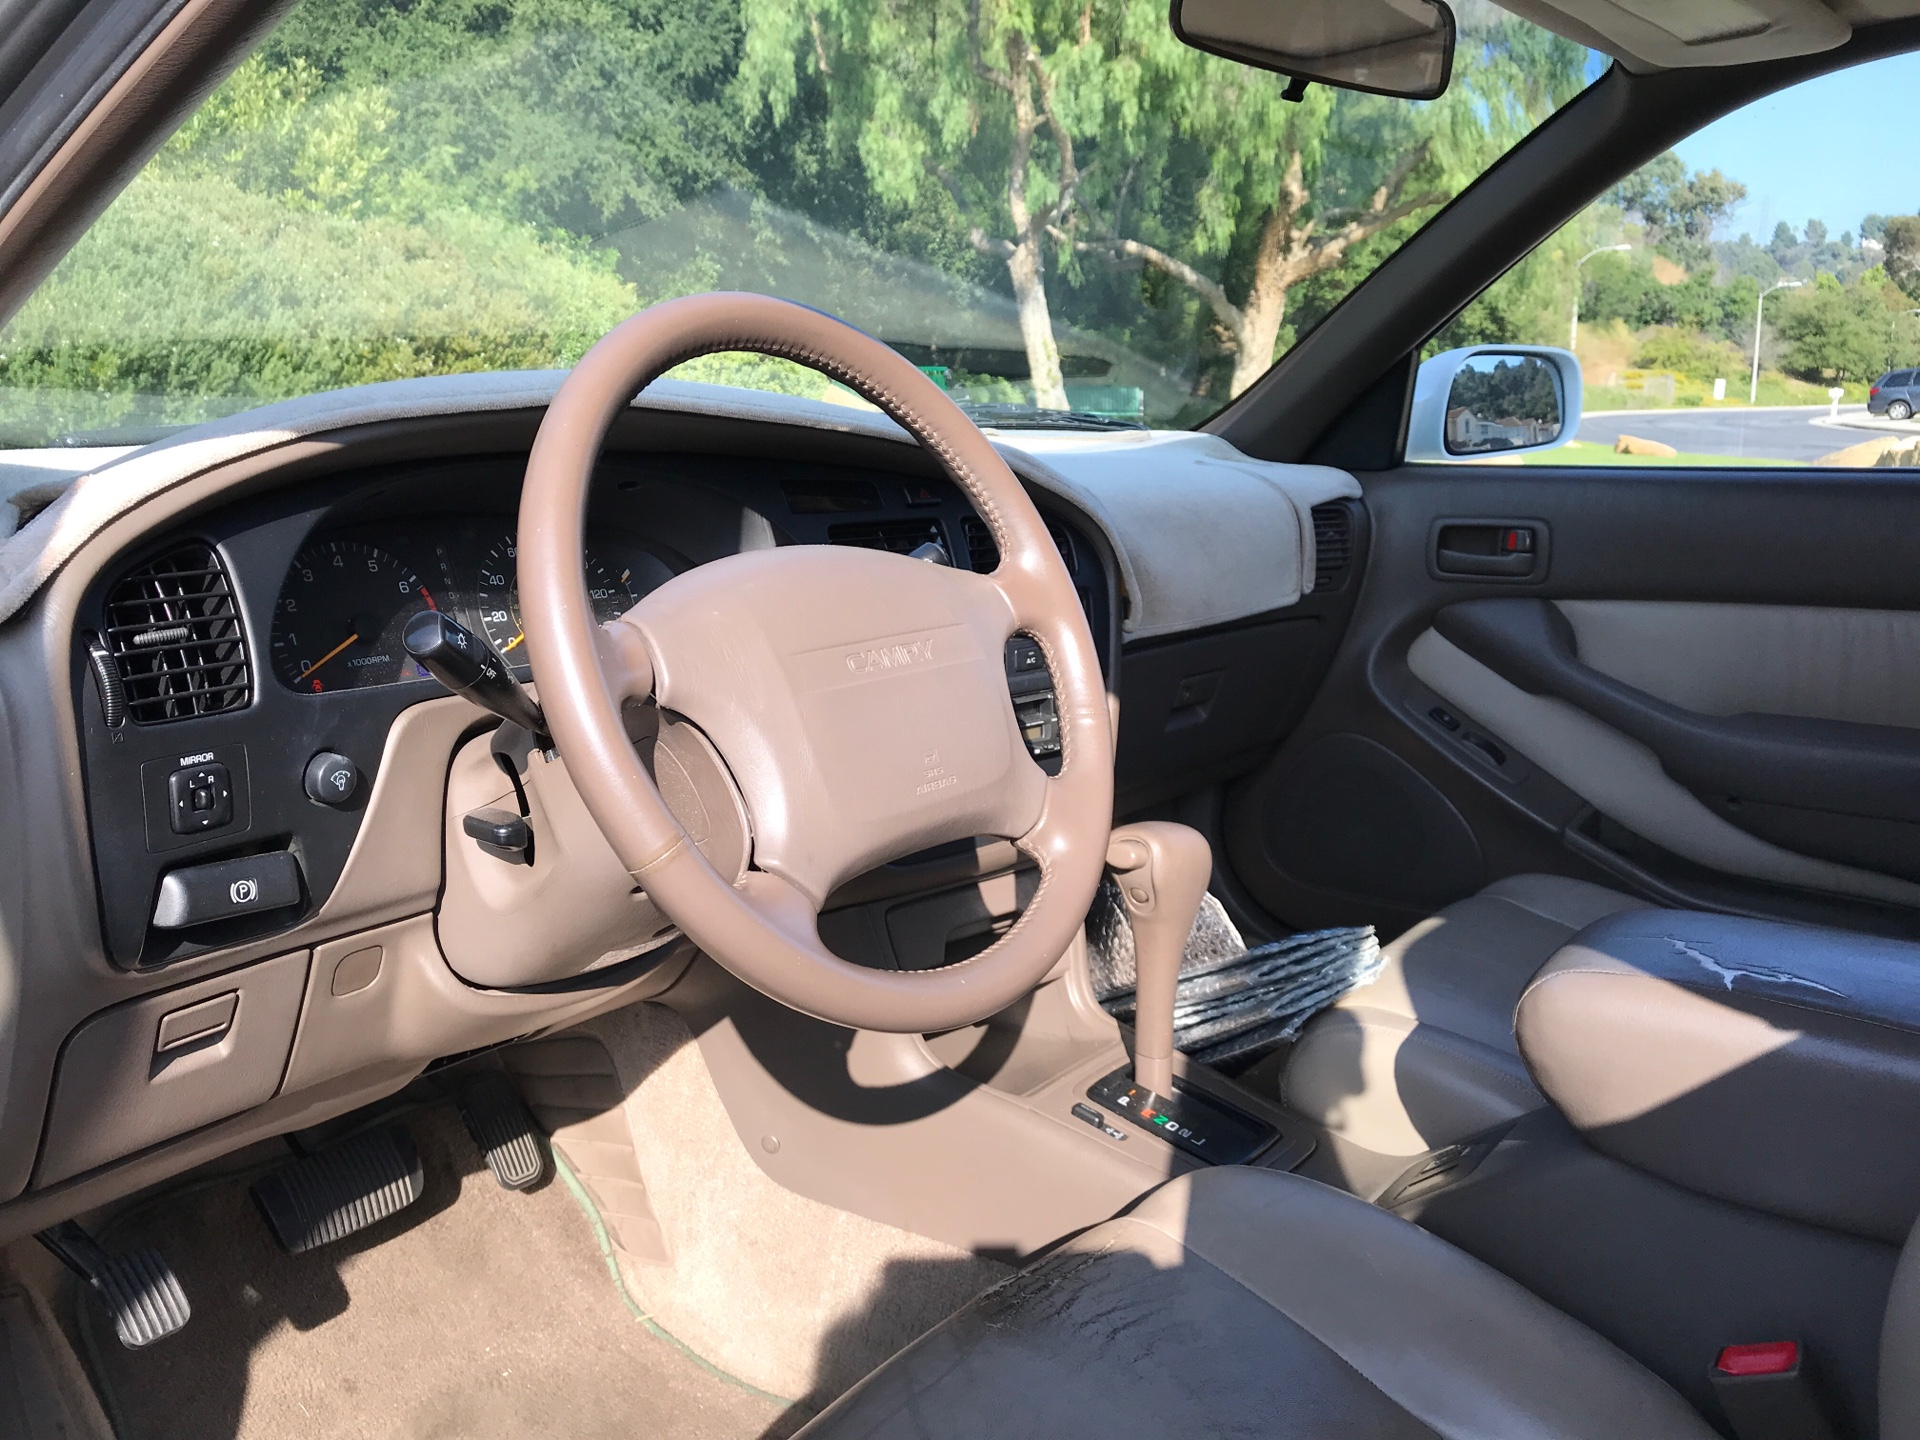 1996 Toyota Camry LE V6 - $2700